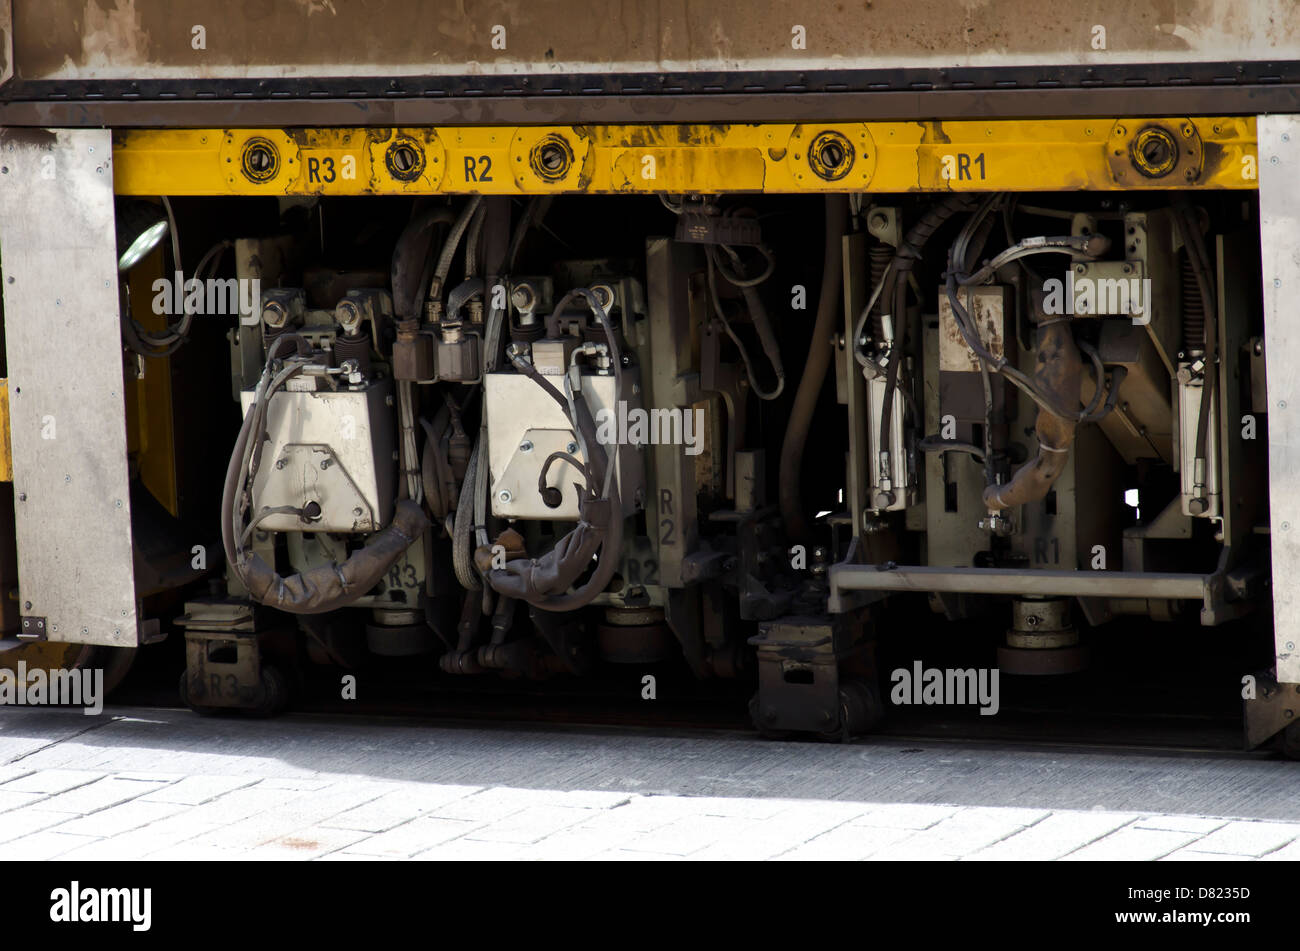 Track levelling and polishing for the controversial Edinburgh Tram project: The machine with the side-skirts removed. - Stock Image